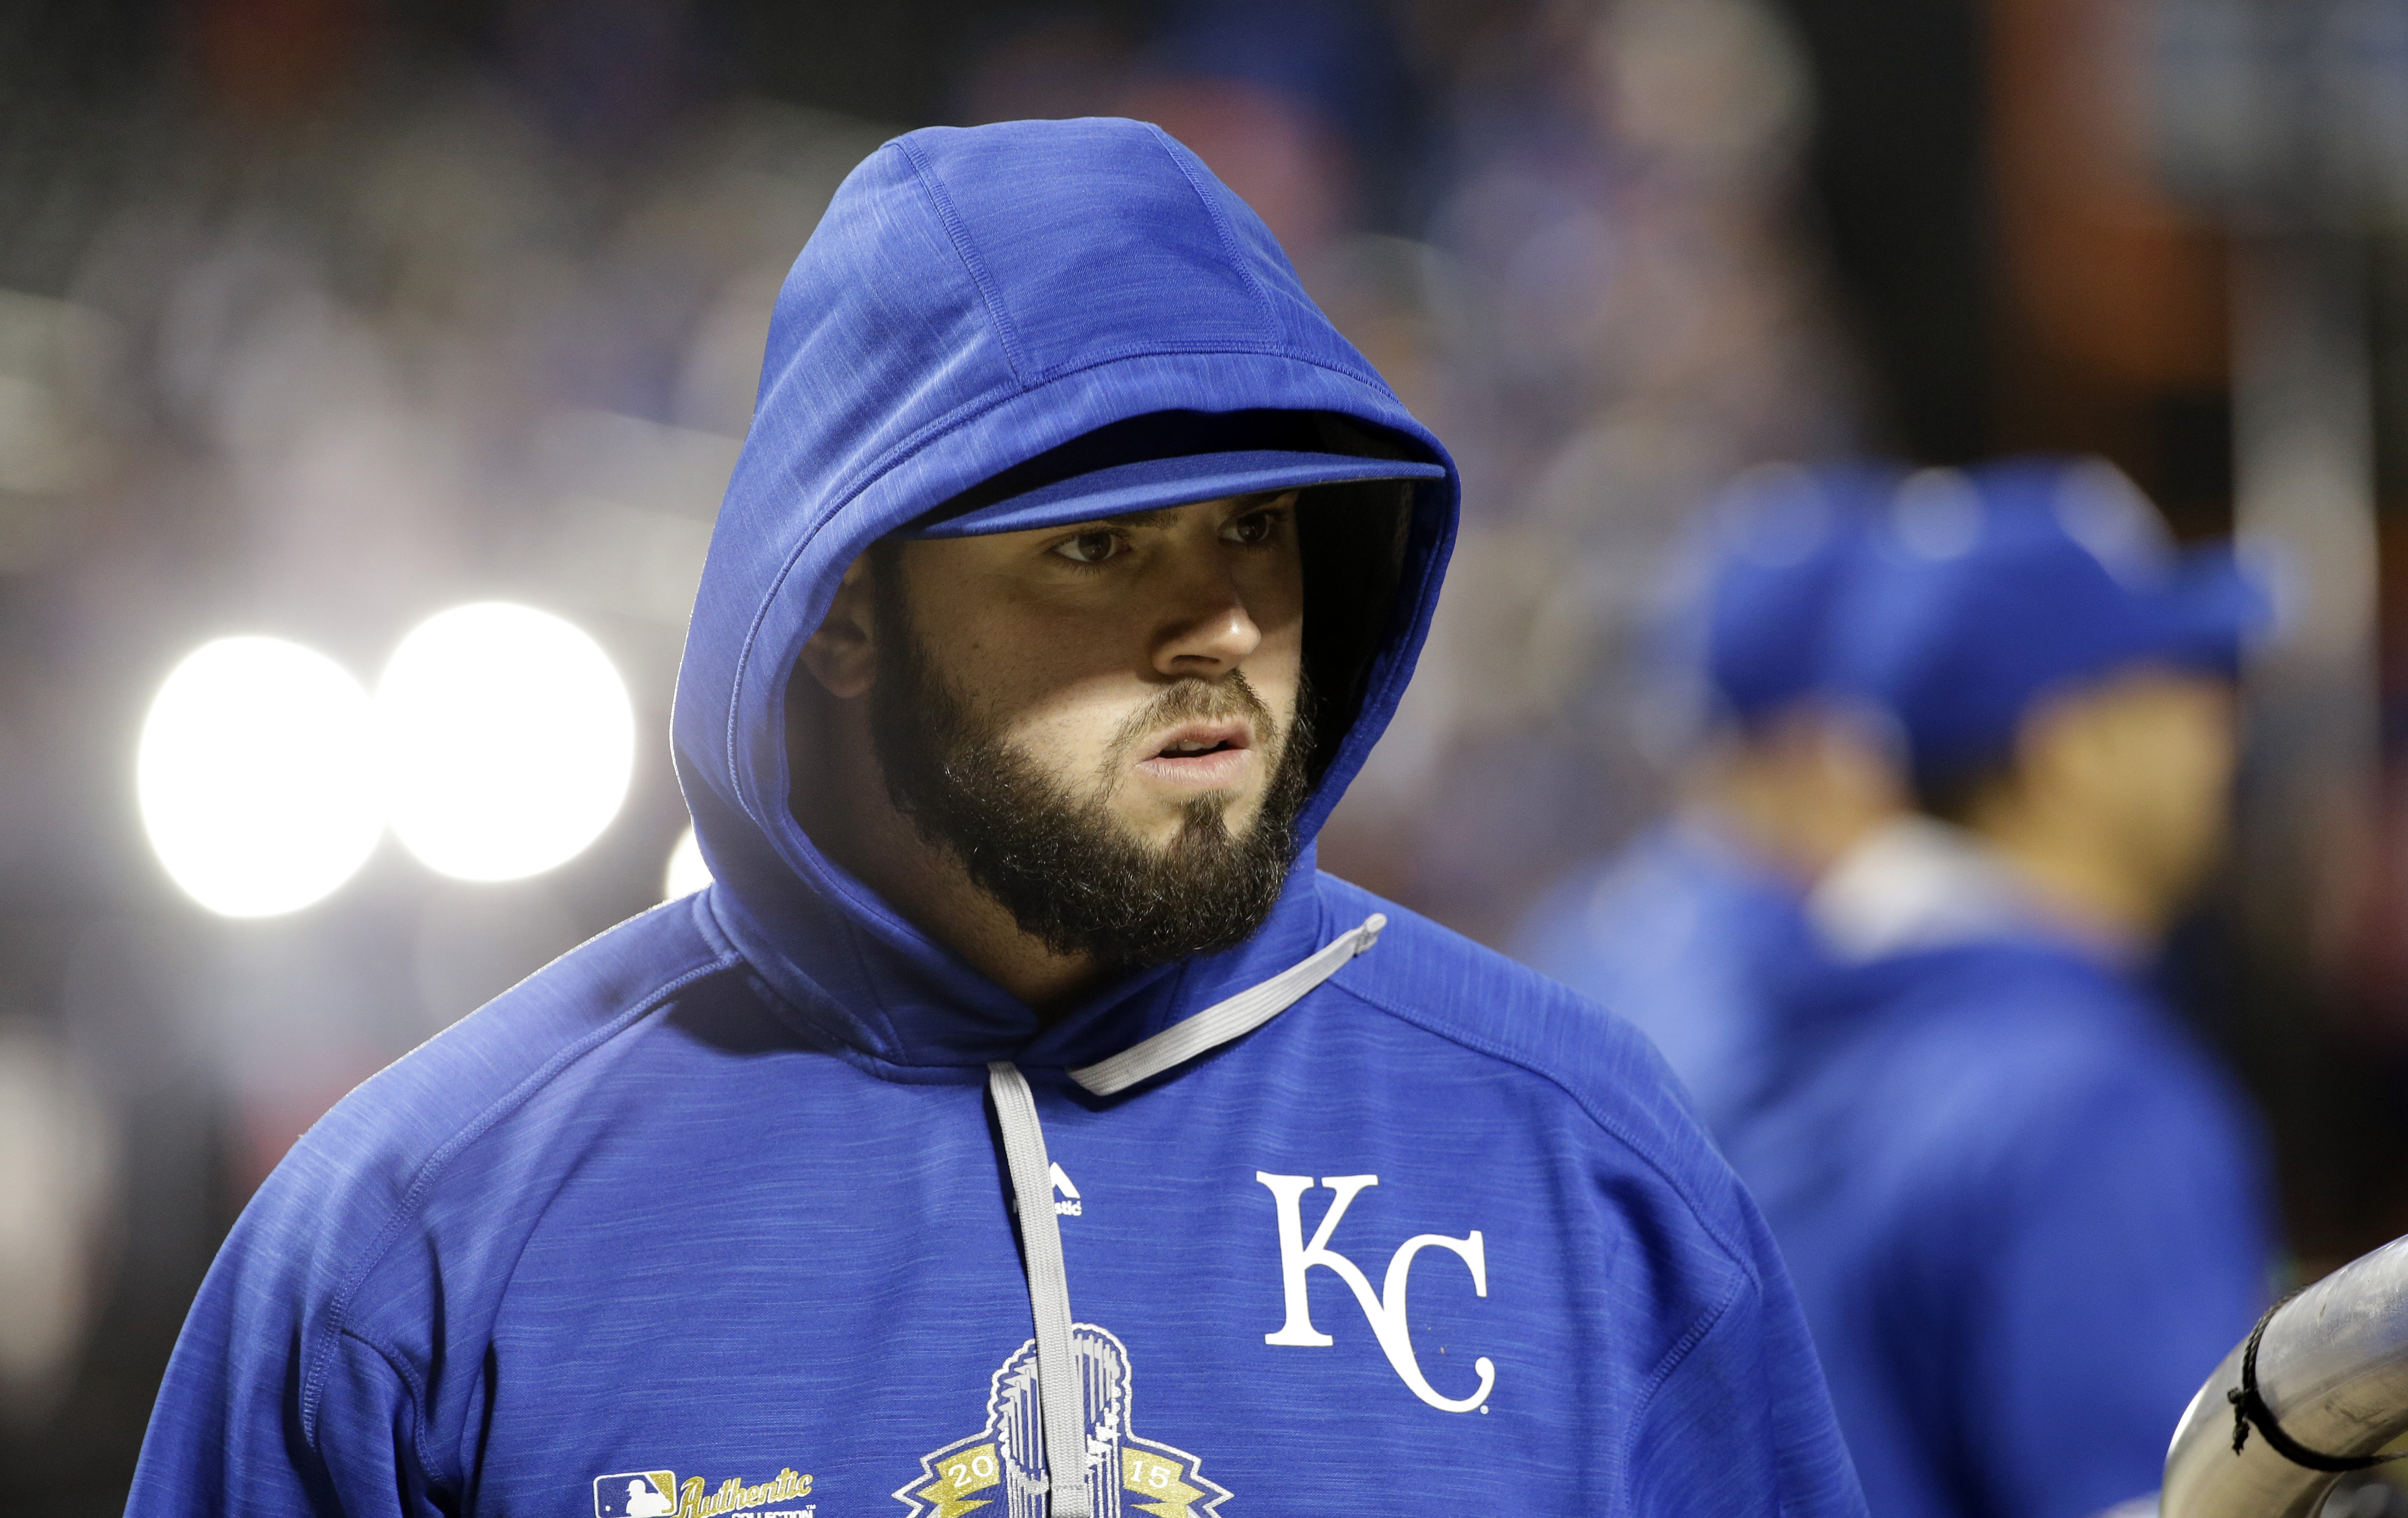 Kansas City Royals third baseman Mike Moustakas arrives for batting practice before Game 3 of the Major League Baseball World Series against the New York Mets Friday, Oct. 30, 2015, in New York. (AP Photo/David J. Phillip)